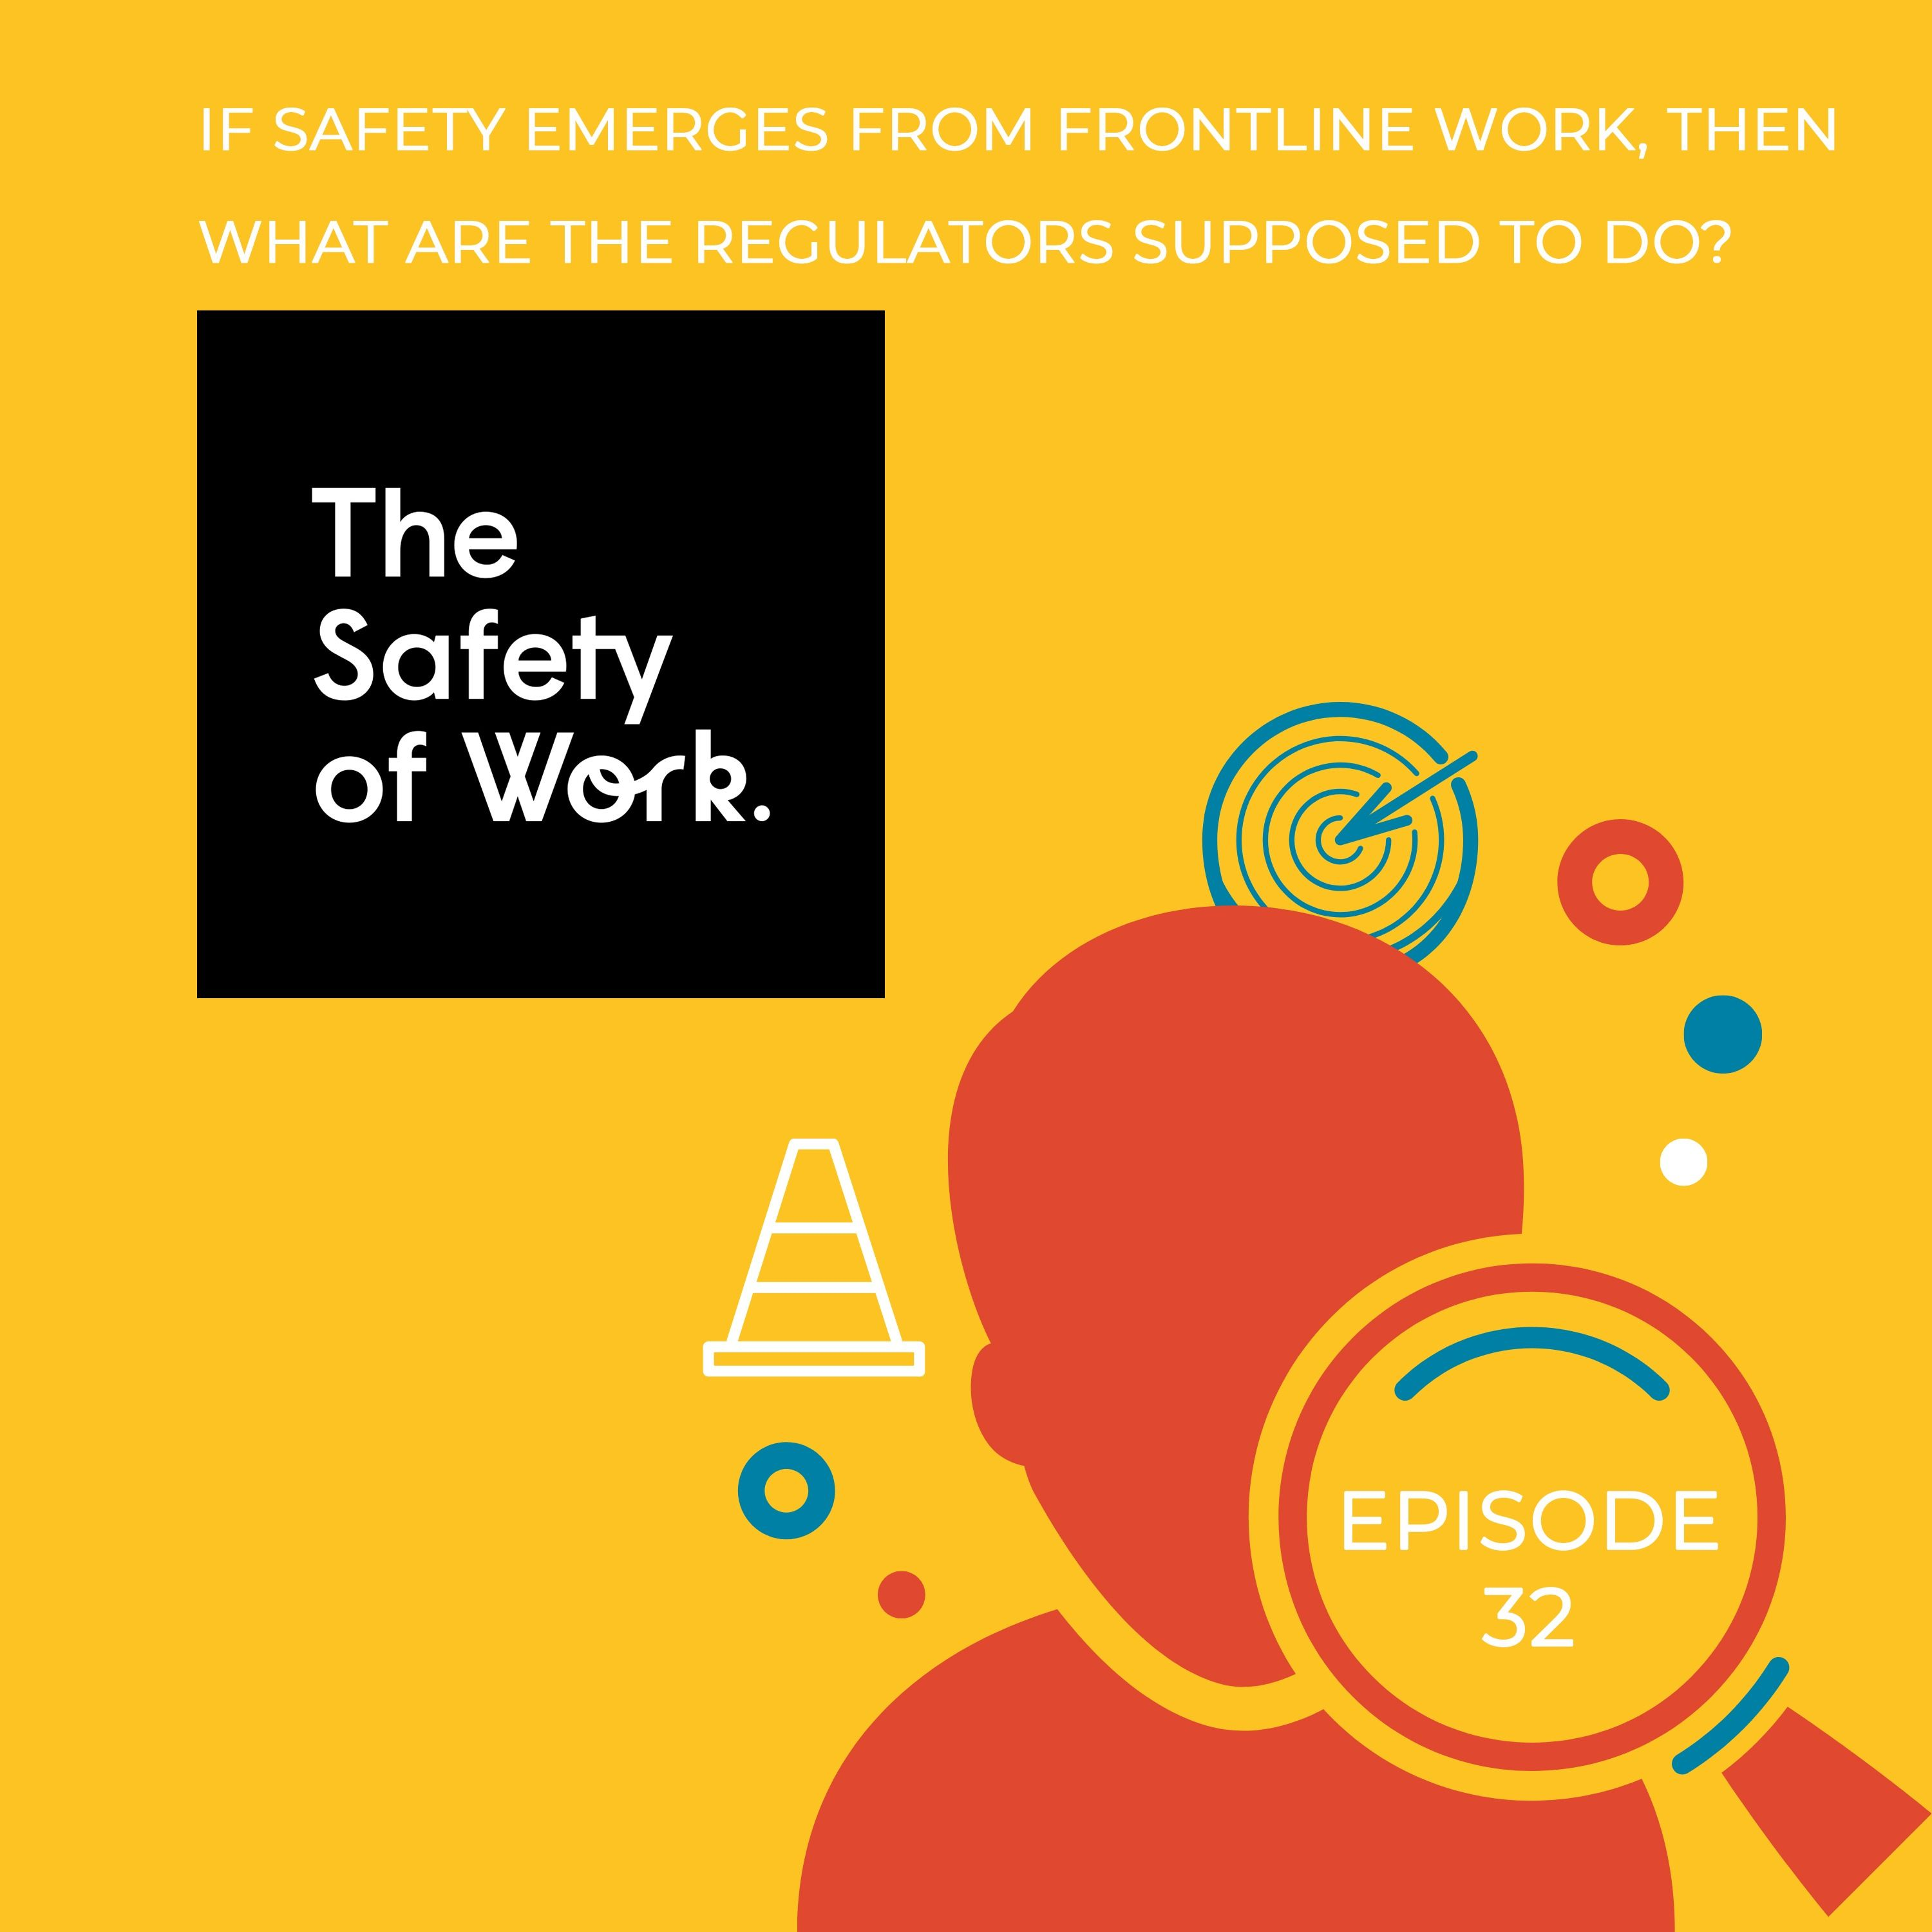 Ep.32 If safety emerges from frontline work, then what are the regulators supposed to do?